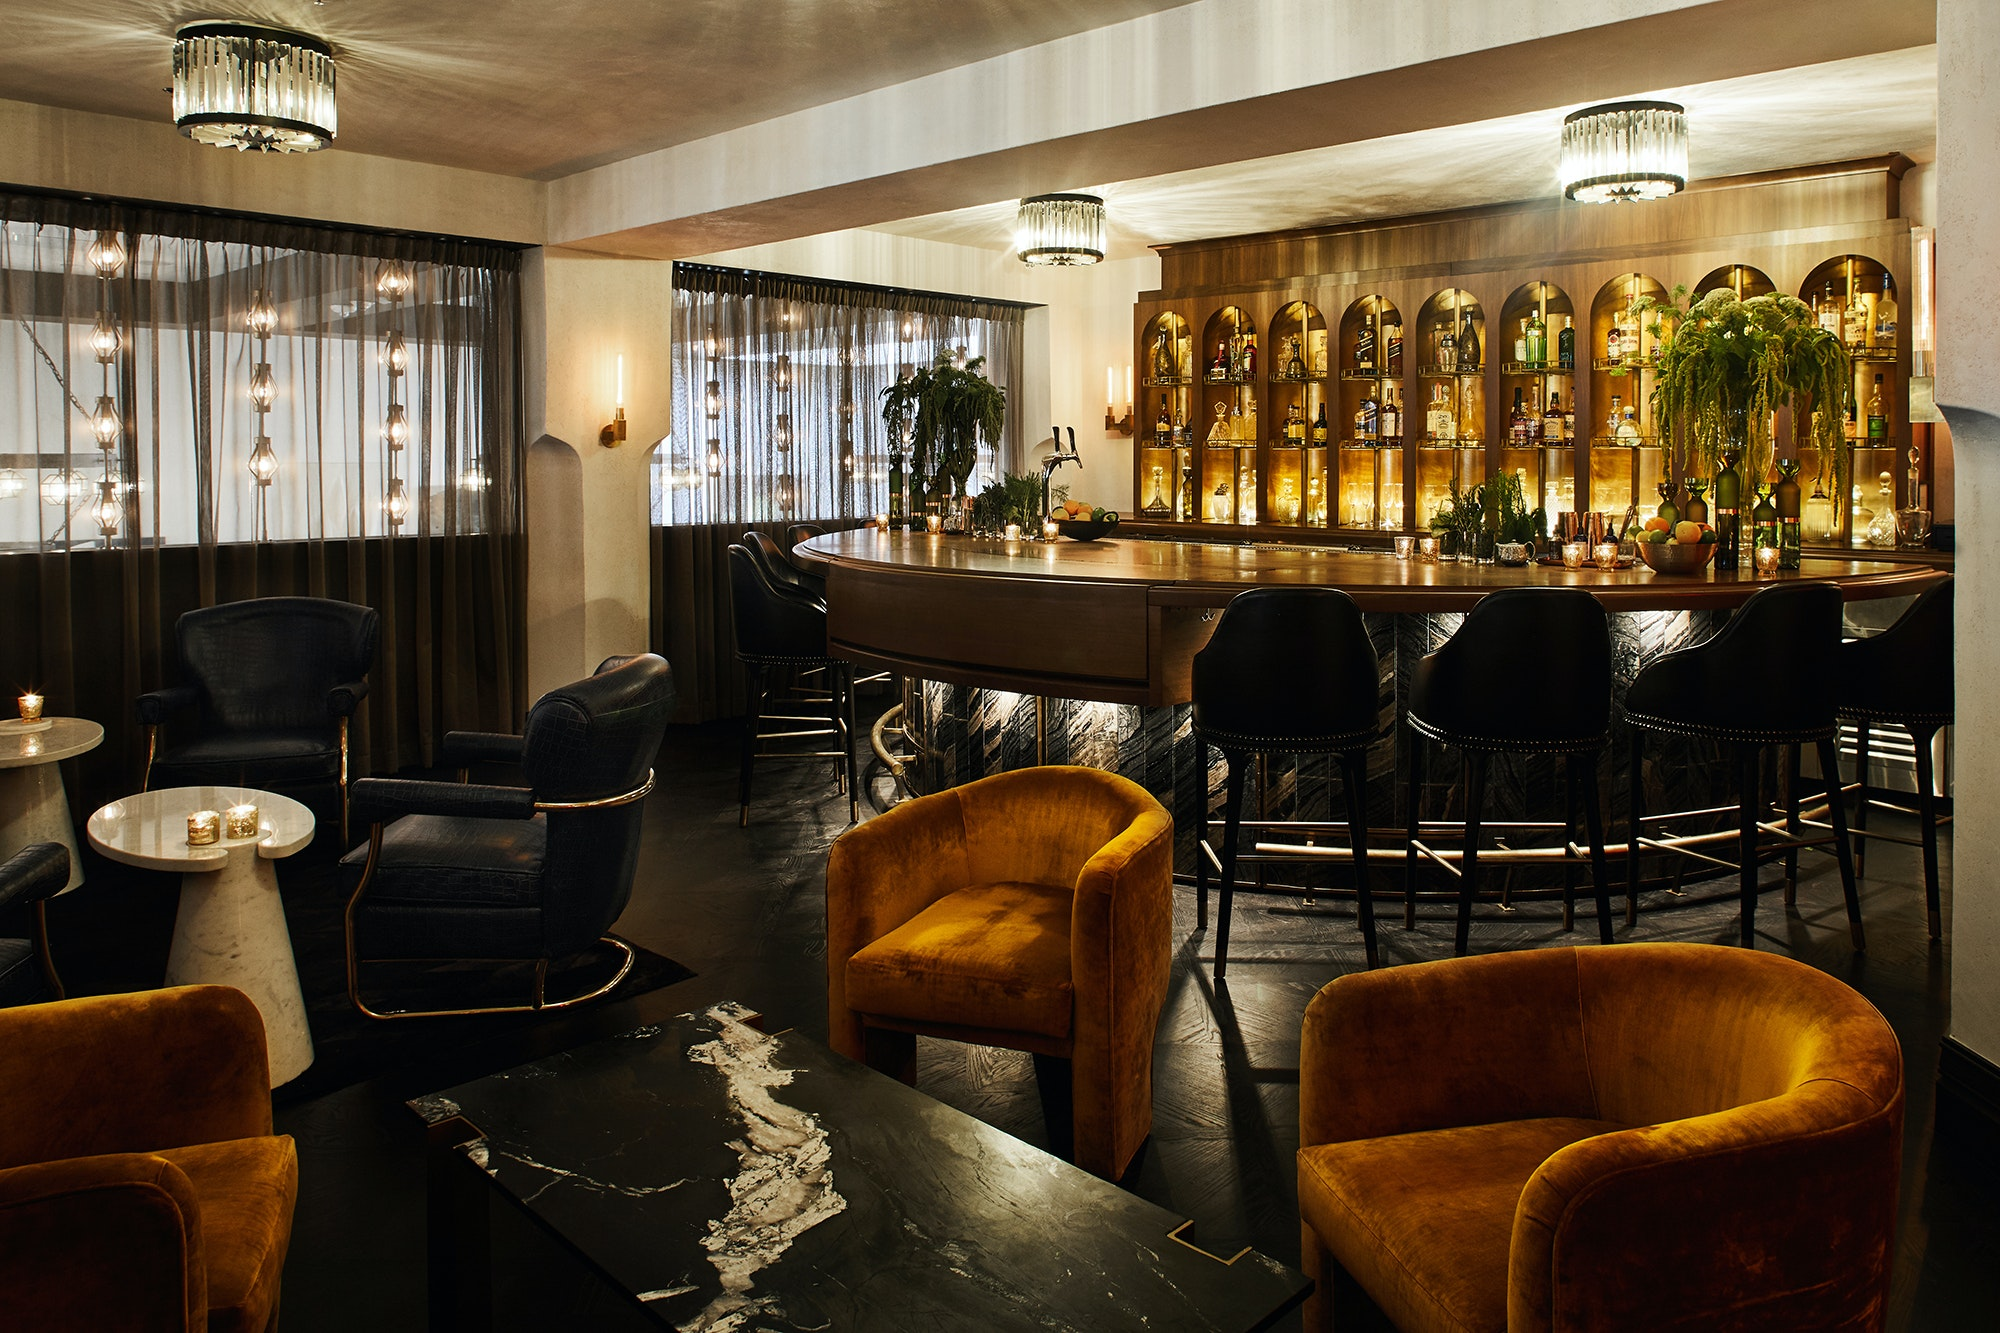 With only 26 seats, Bar Alta will serve cocktails custom-made to the tastes of each guest.